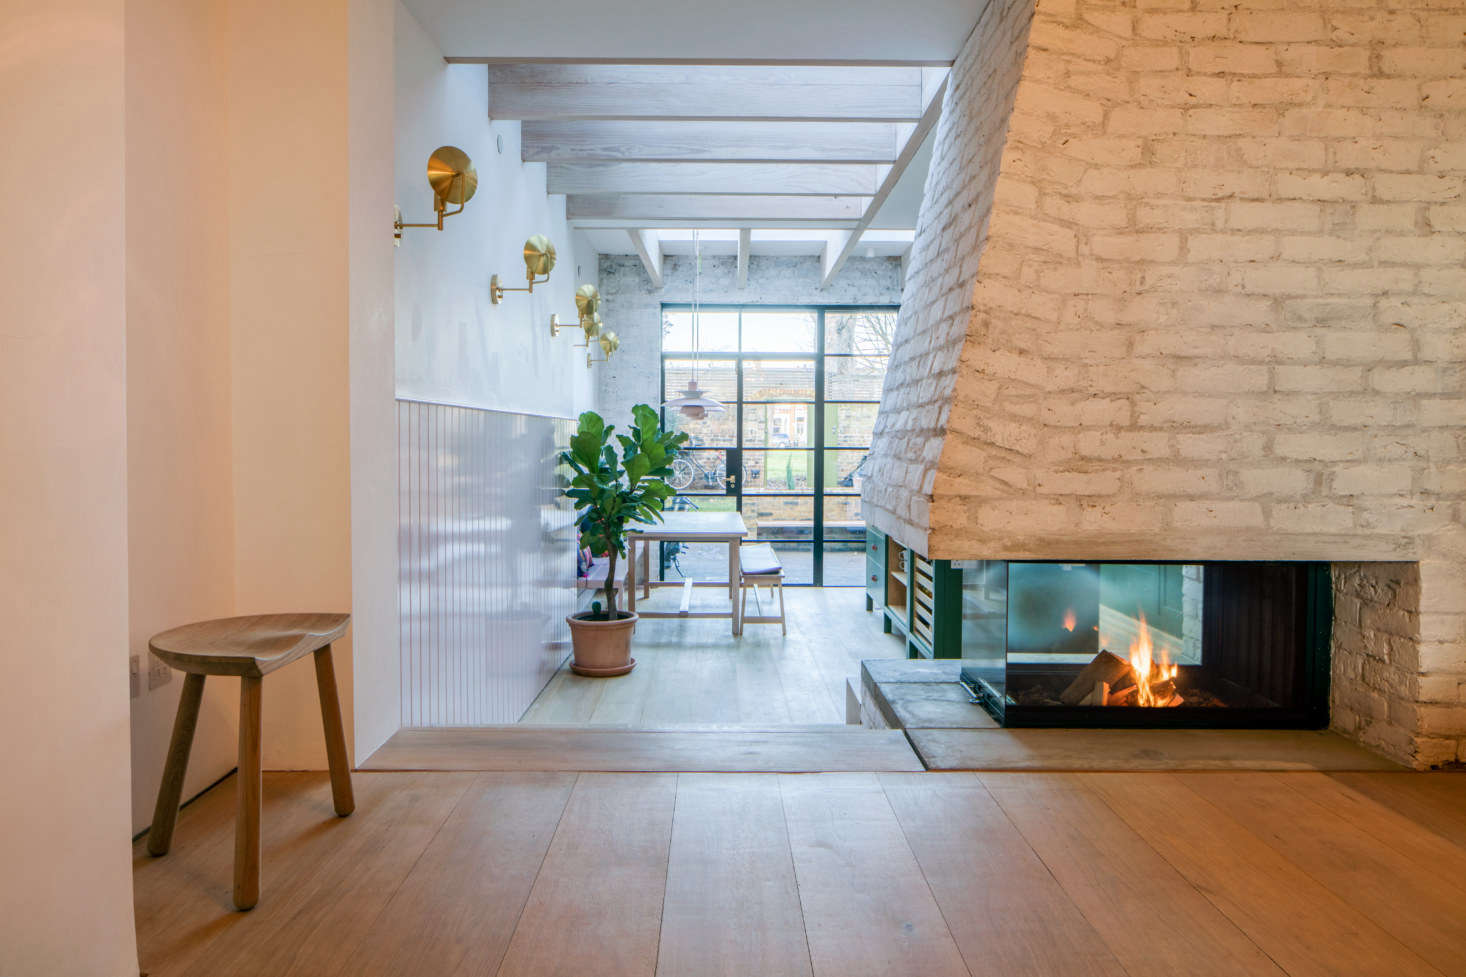 """The centerpiece of the kitchen: a new, custom brick fireplace. """"We also have an unhealthy obsession with wood-burning fireplaces,"""" Toke says."""